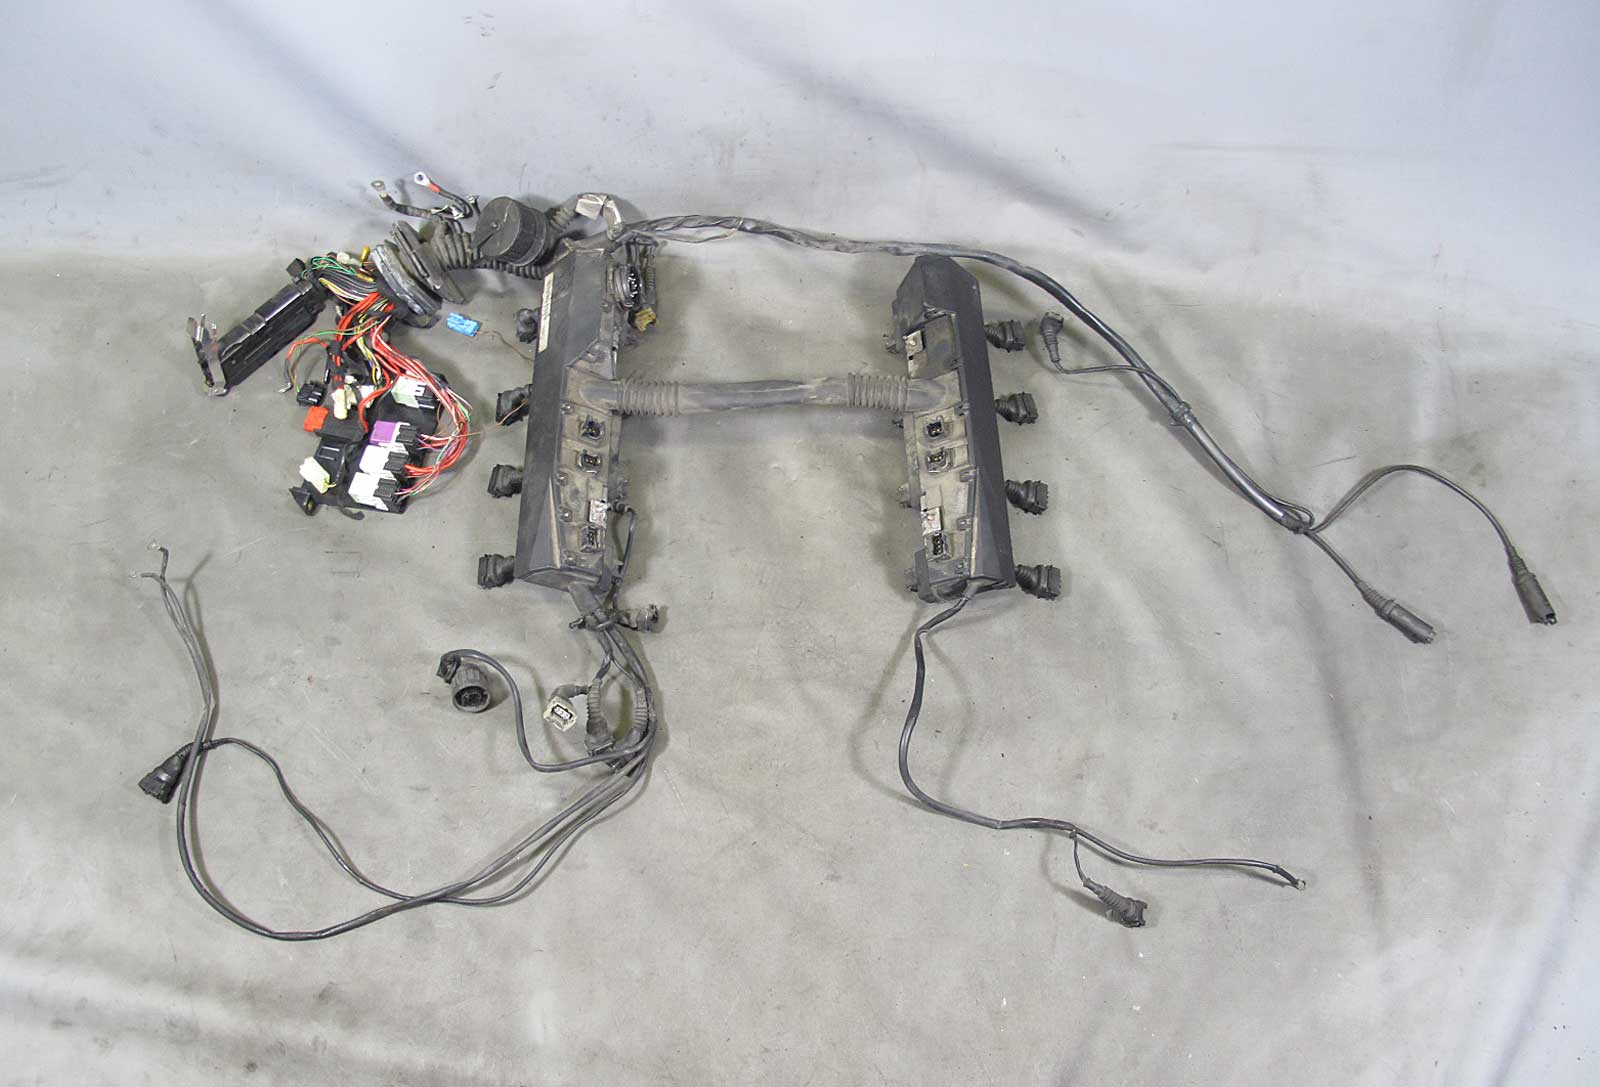 1995 Bmw Wiring Harness Everything About Diagram Z4 Fuse 1994 E34 530i 540i M60 V8 Engine For Manual Rh Cafr Ebay Ca Chewed Up